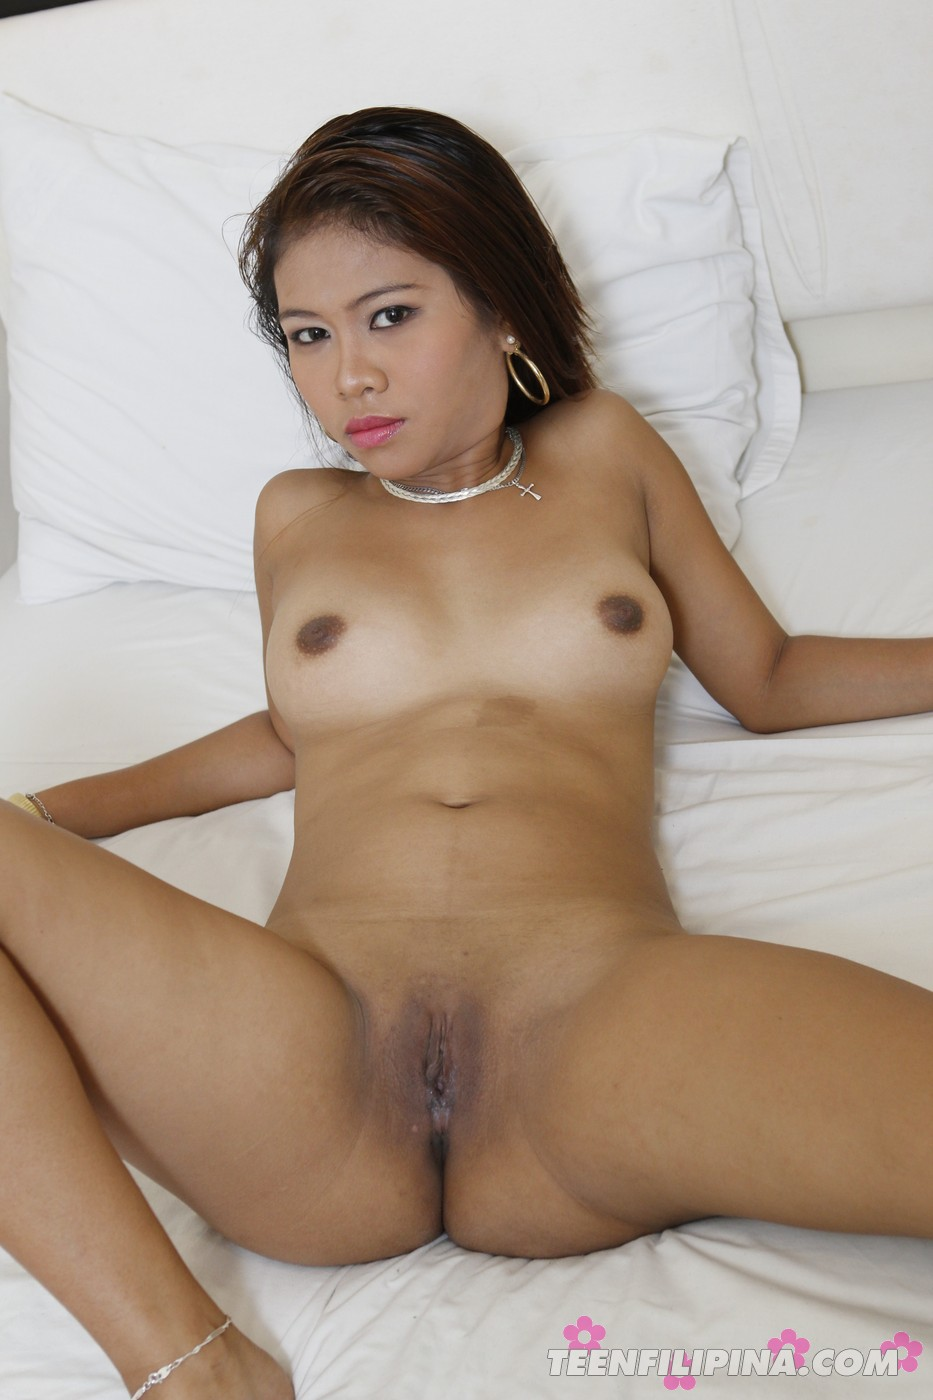 Teen asian amateur nude congratulate